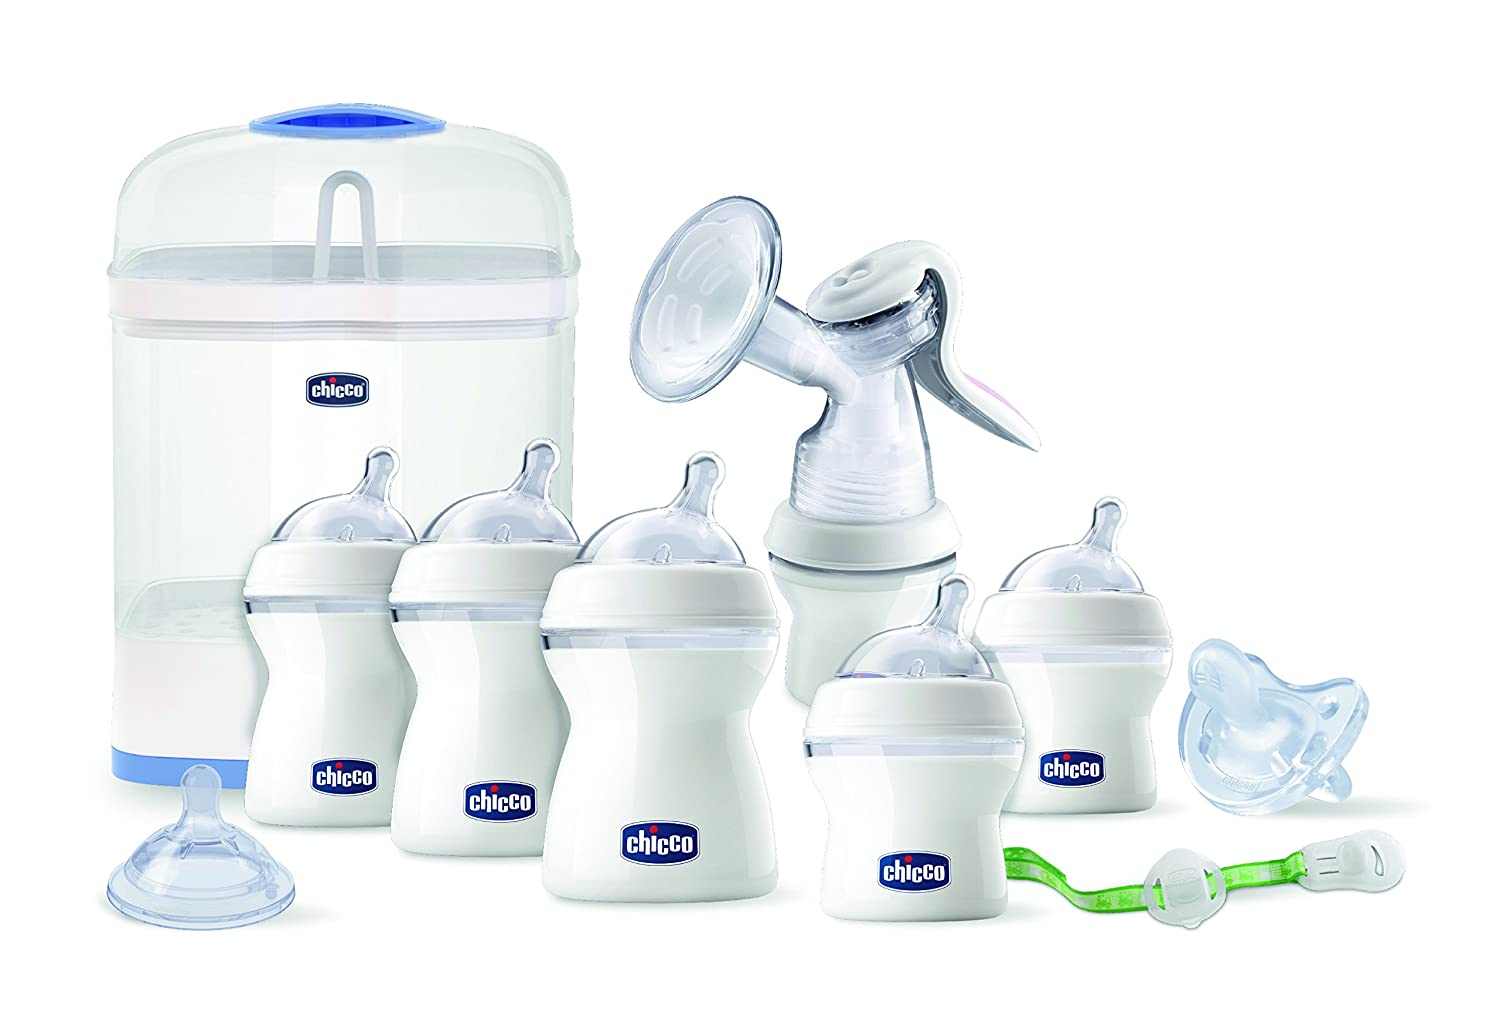 Chicco Natural Feeling All You Need Starter Set ARTSANA UK LTD 80742600020